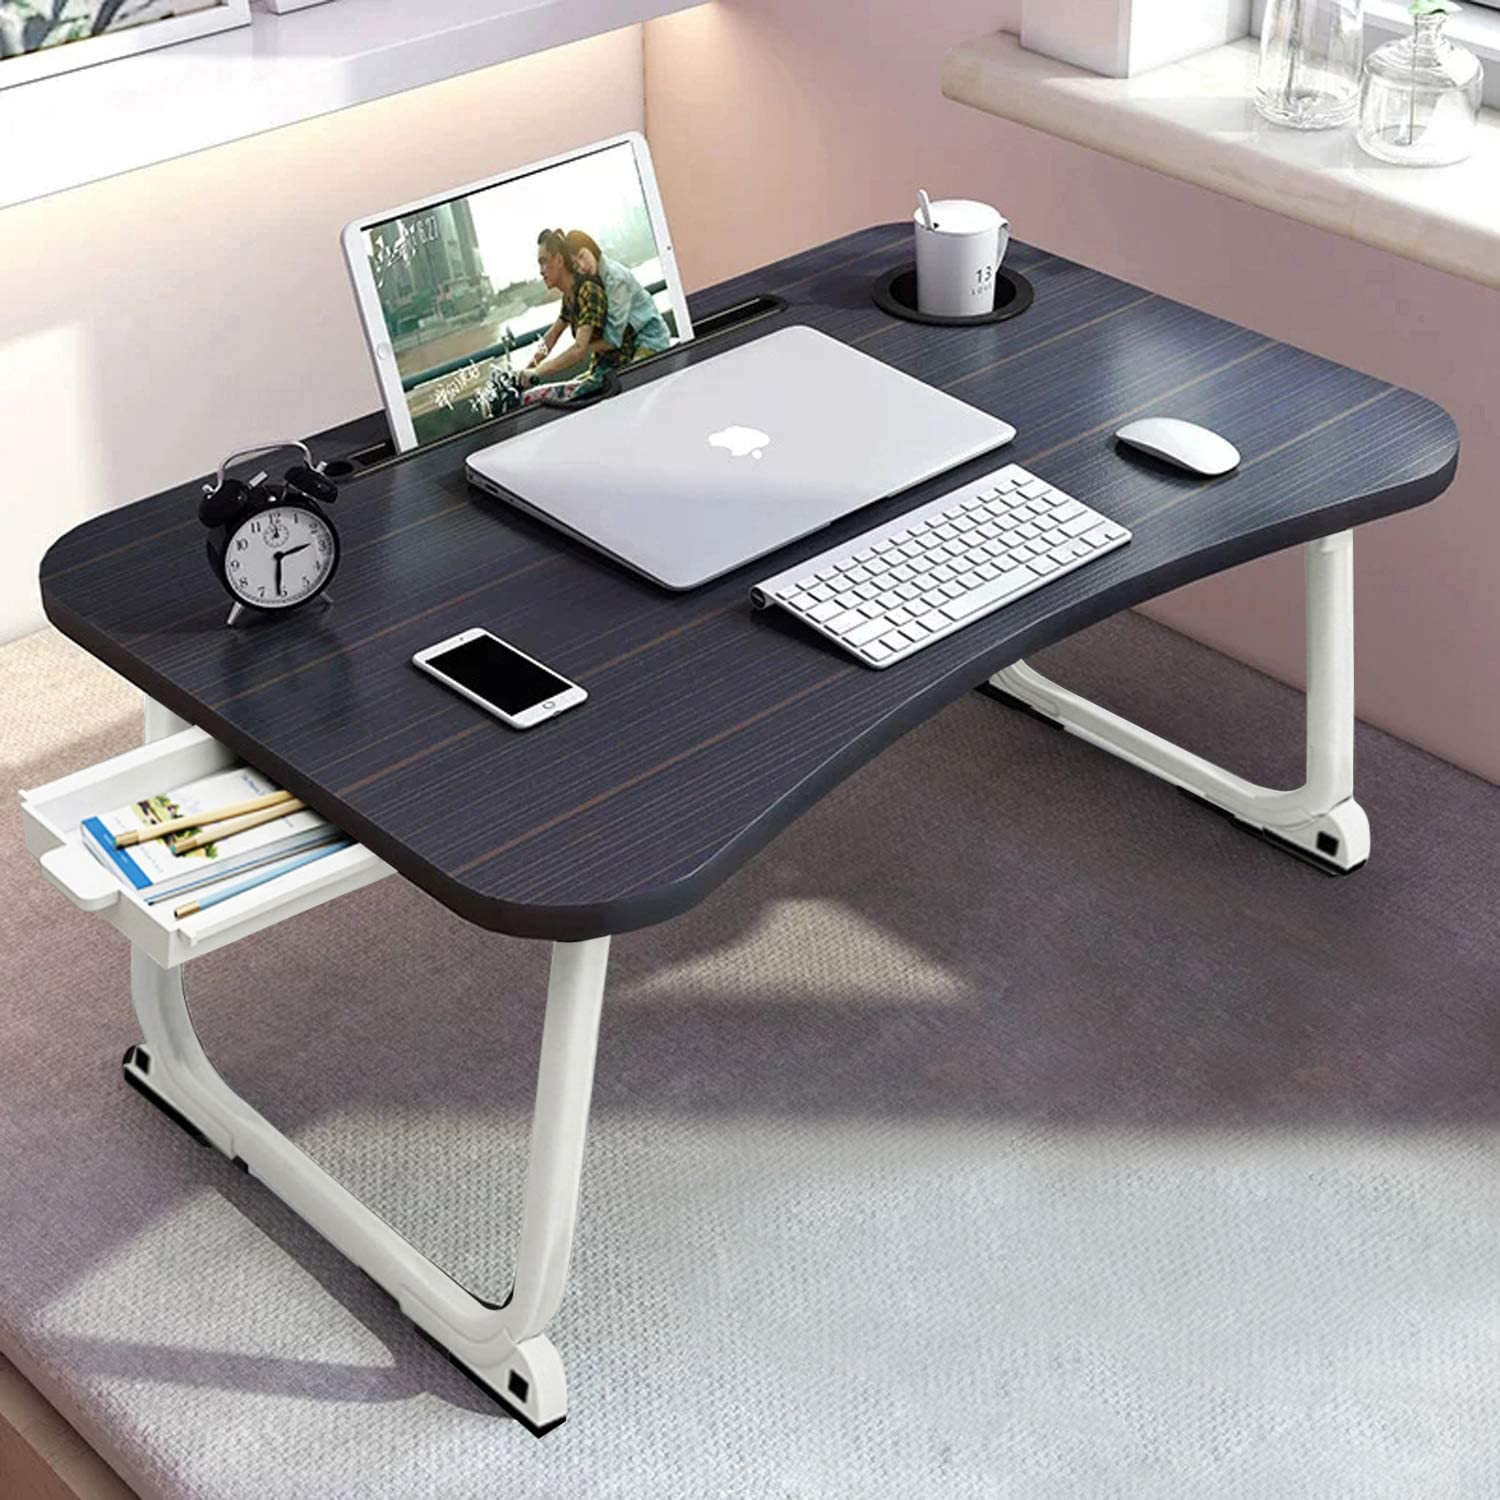 """Laptop Table, Foldable Laptop Tray with Beverage Holder, Portable Lap Tray with Storage Drawer for Kid Study, Adult Video Conference Work Station at Floor Couch Hospital,Black Golden(23.6""""x15.7""""x11"""")"""